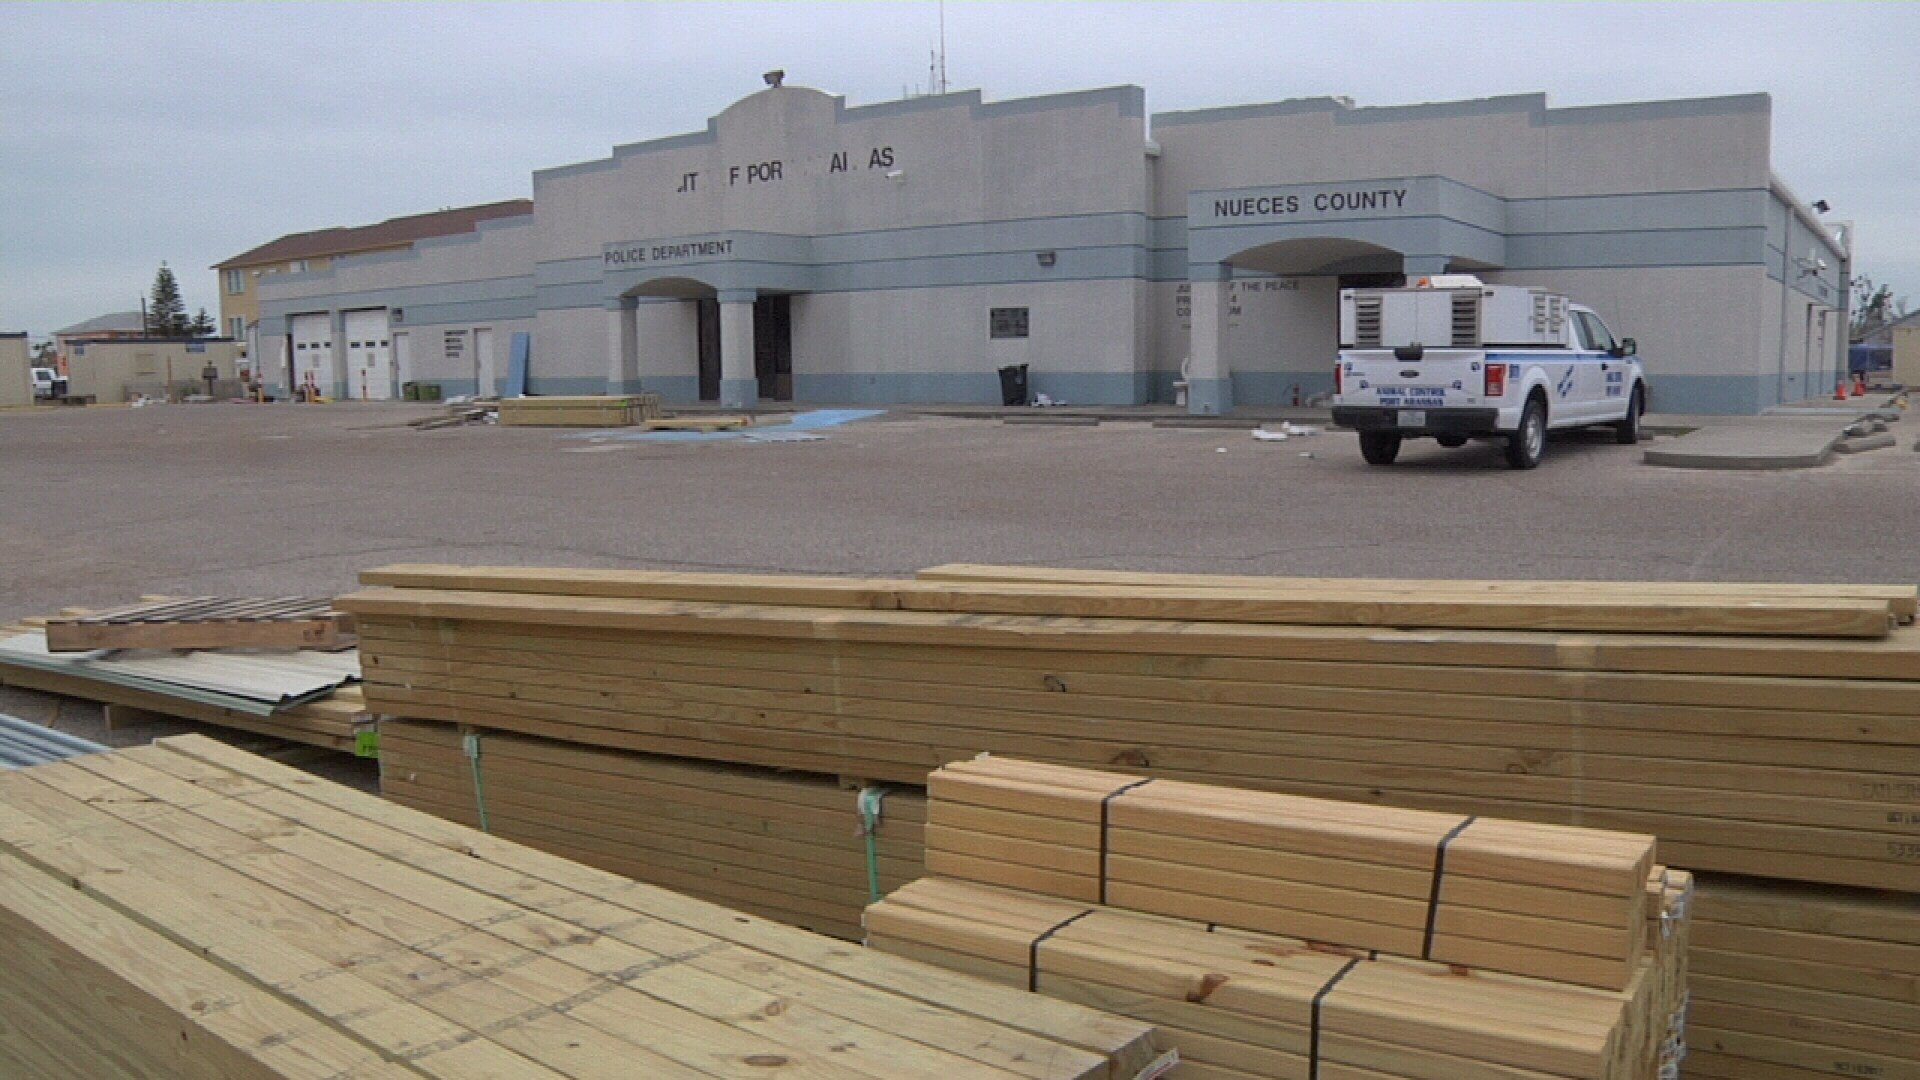 Port Aransas city leaders want to rebuild city structures at a higher elevation than FEMA requires.